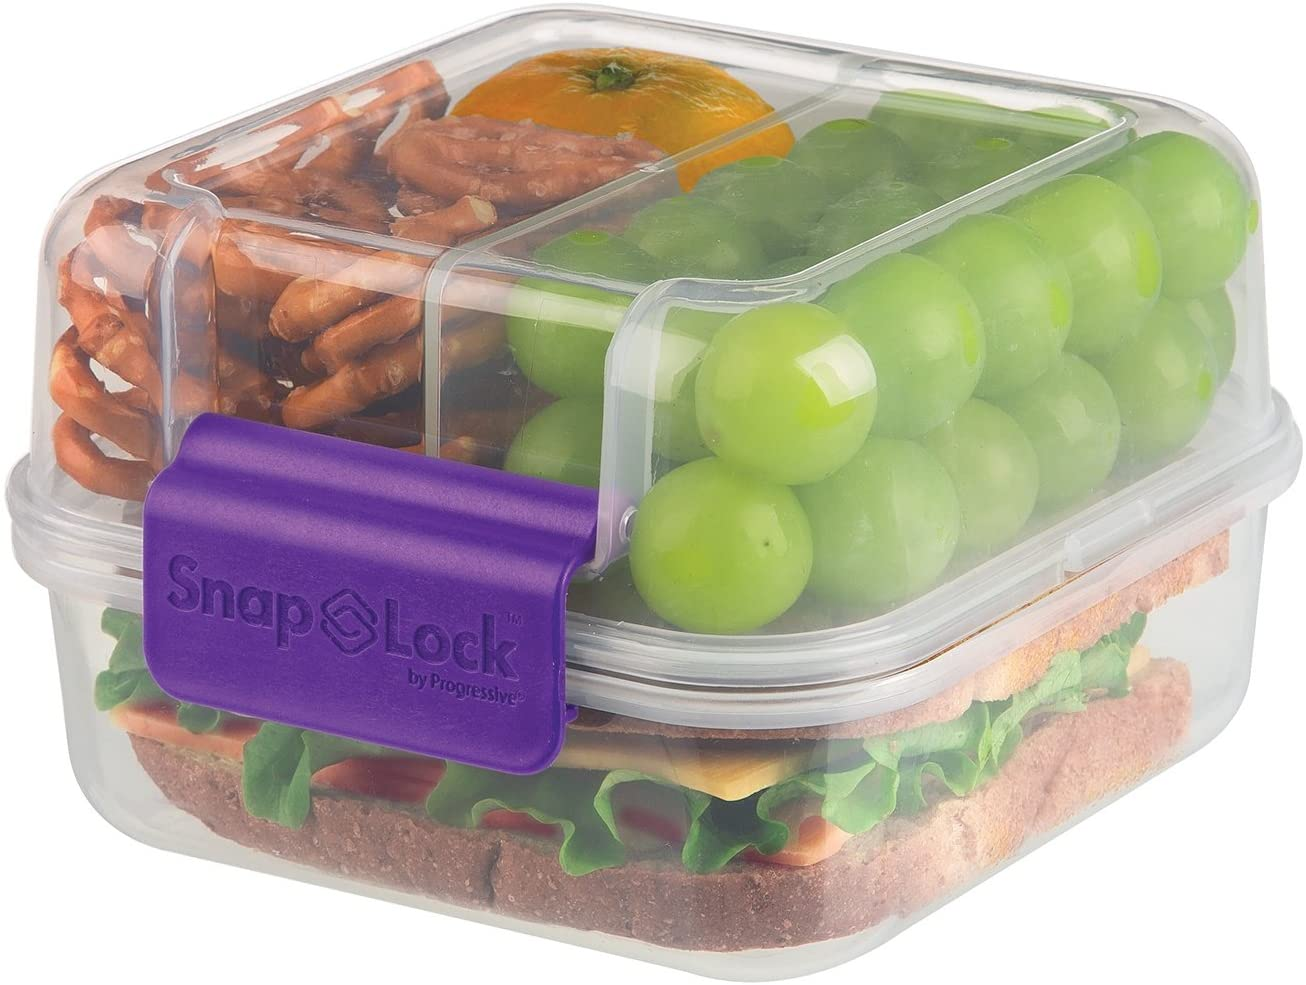 SnapLock by Progressive Lunch Cube To-Go Container - Purple, SNL-1005B Easy-To-Open, Silicone Seal, Snap-Off Lid, Stackable, BPA FREE